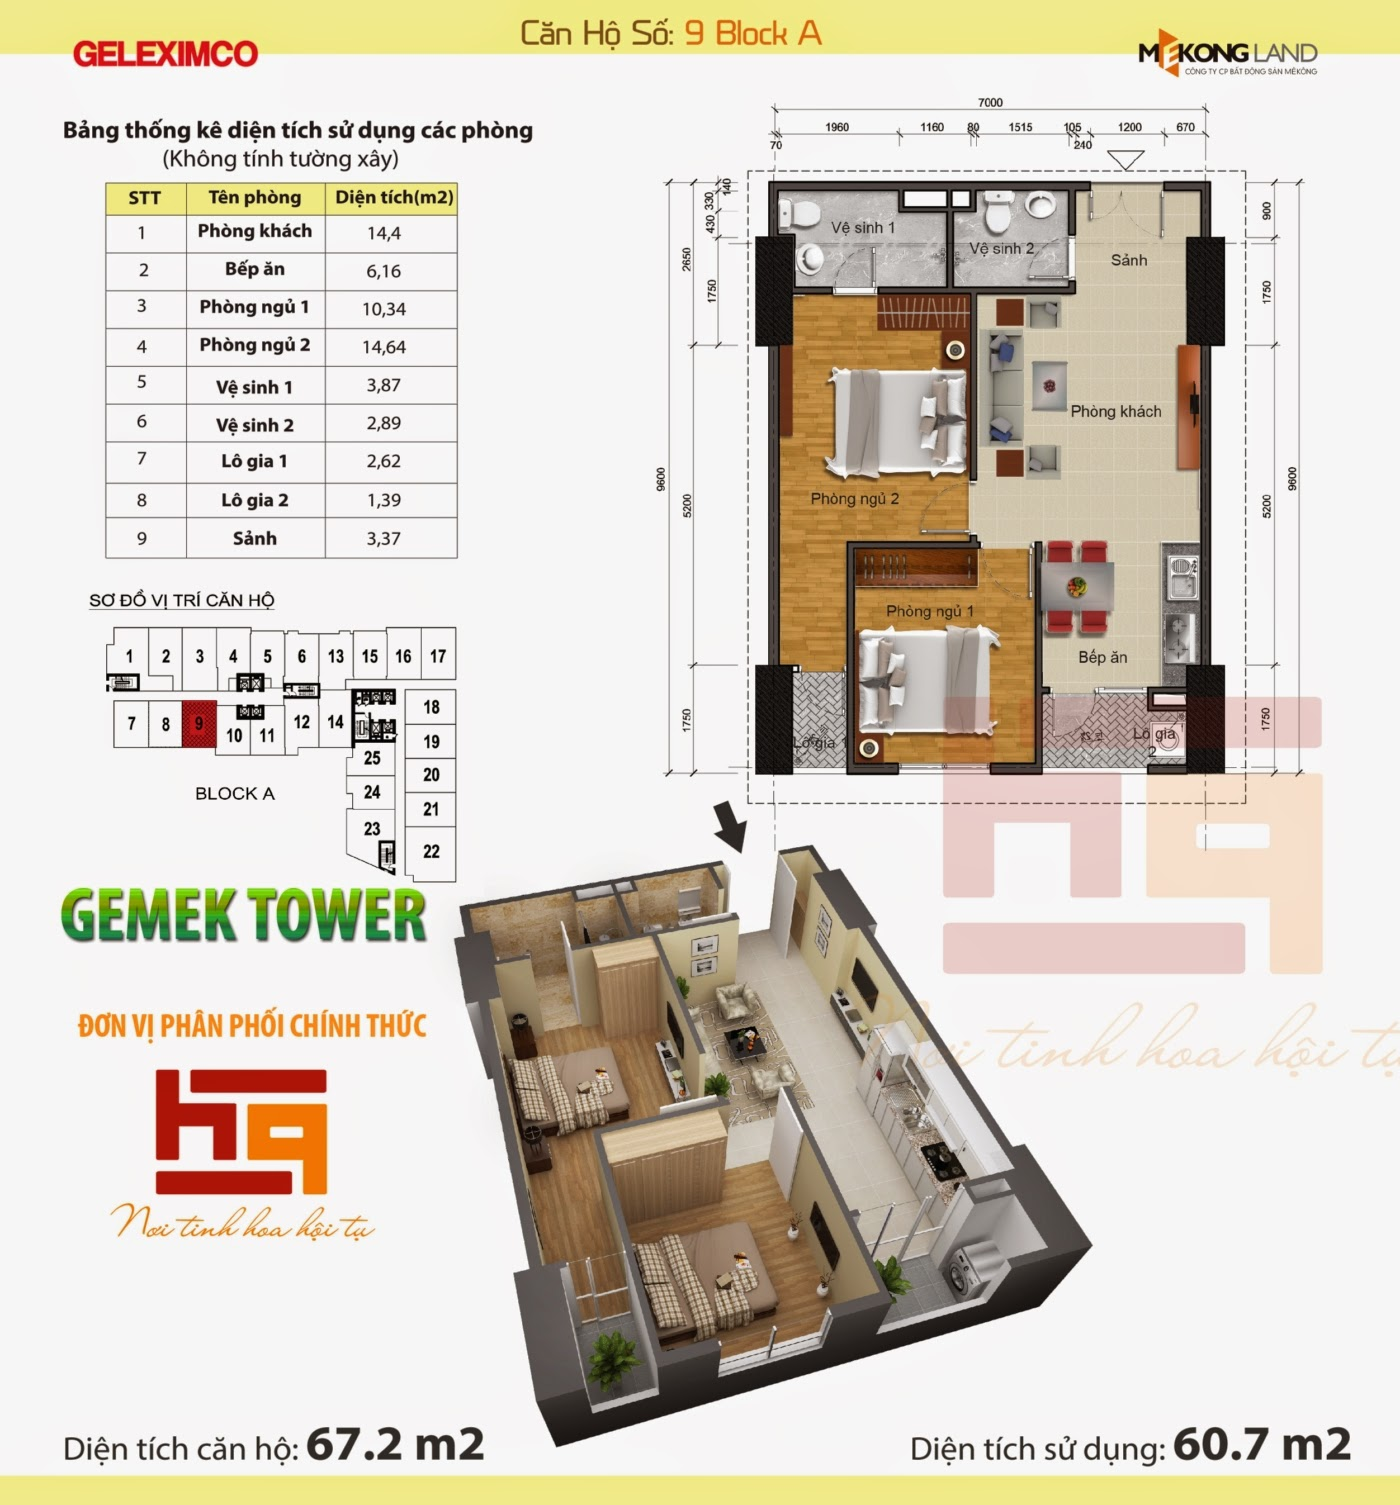 gemek-tower-can-9